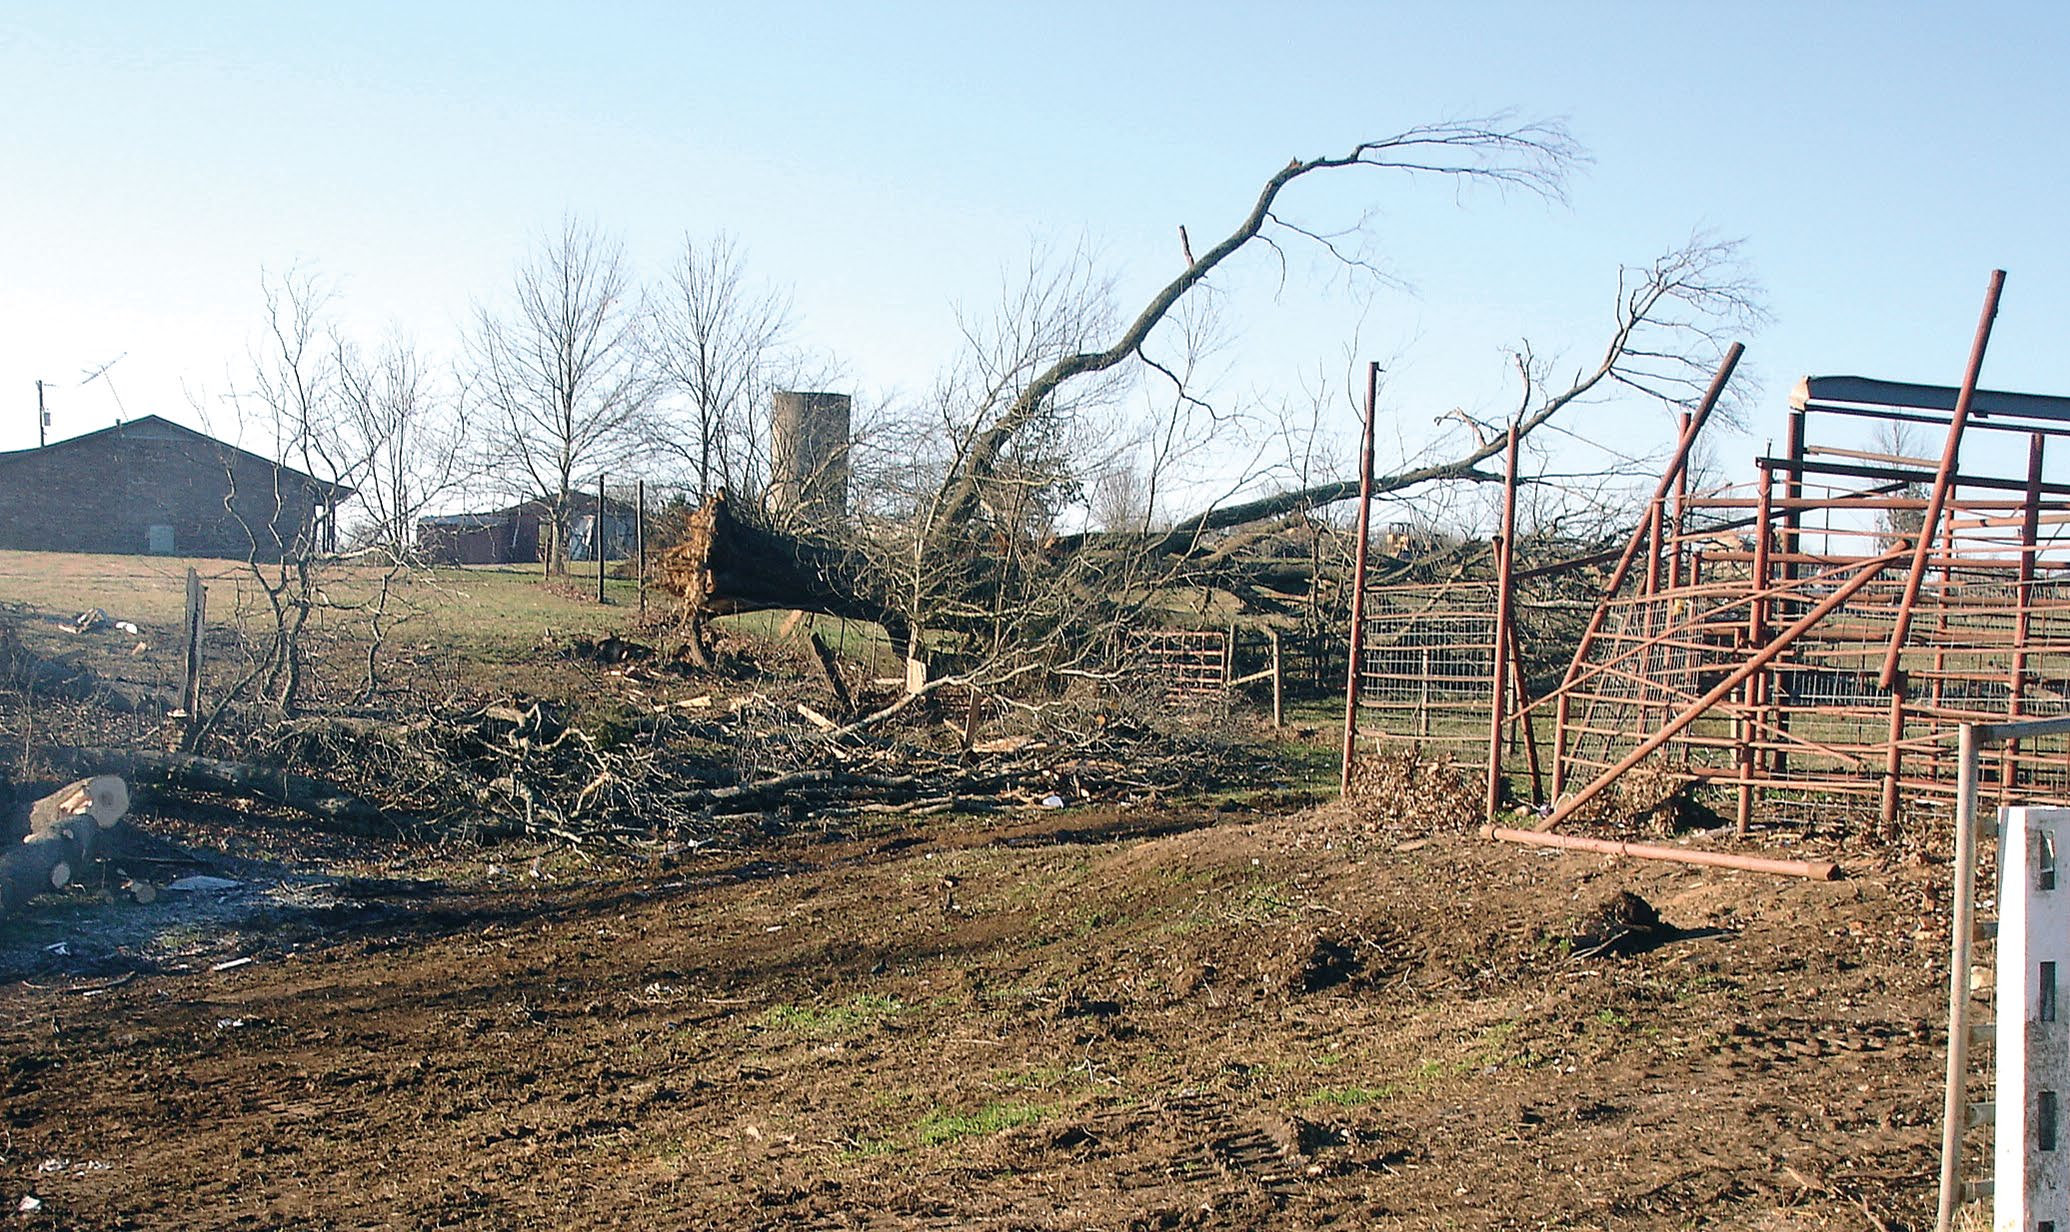 Farmland with debris and property damage caused by a hurricane.